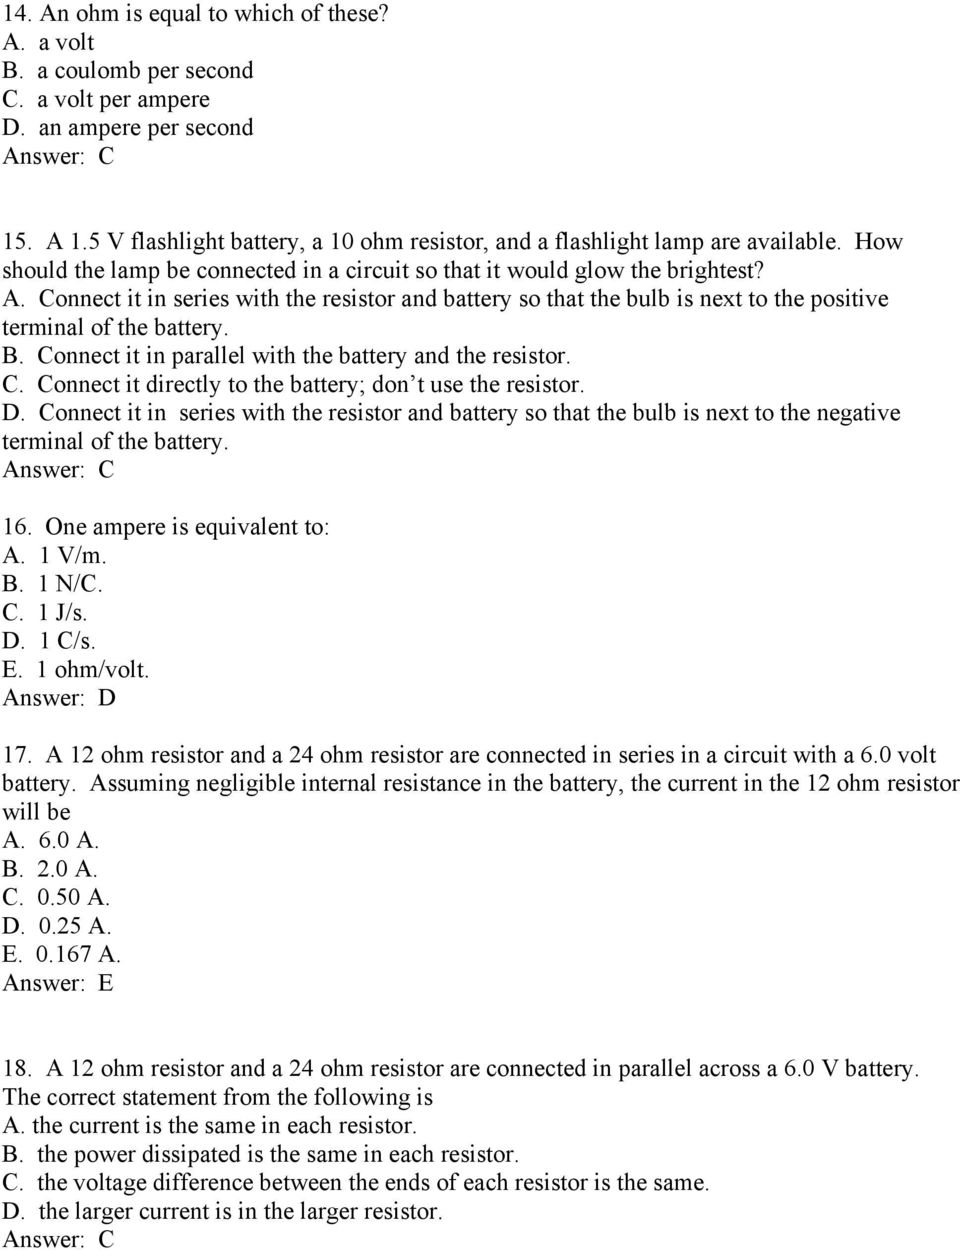 Chapter 13 Electric Circuits Pdf Parallel And Series Circuit With Lightbulbs Battery Connect It In The Resistor So That Bulb Is Next To